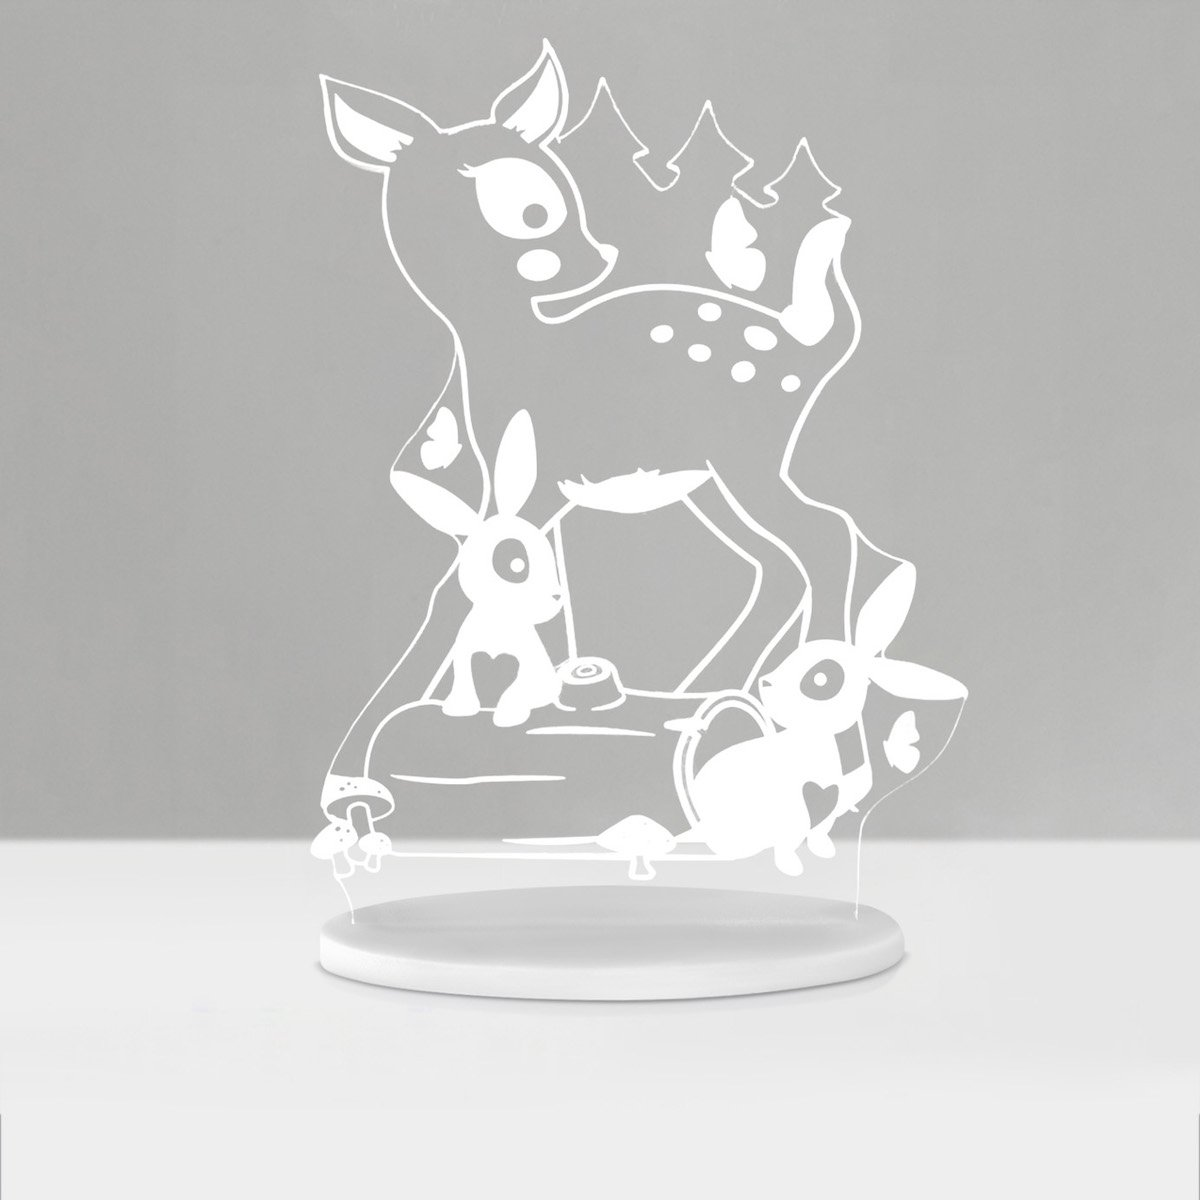 My Dream Light LED Night Light Woodlands PLUG IN 3